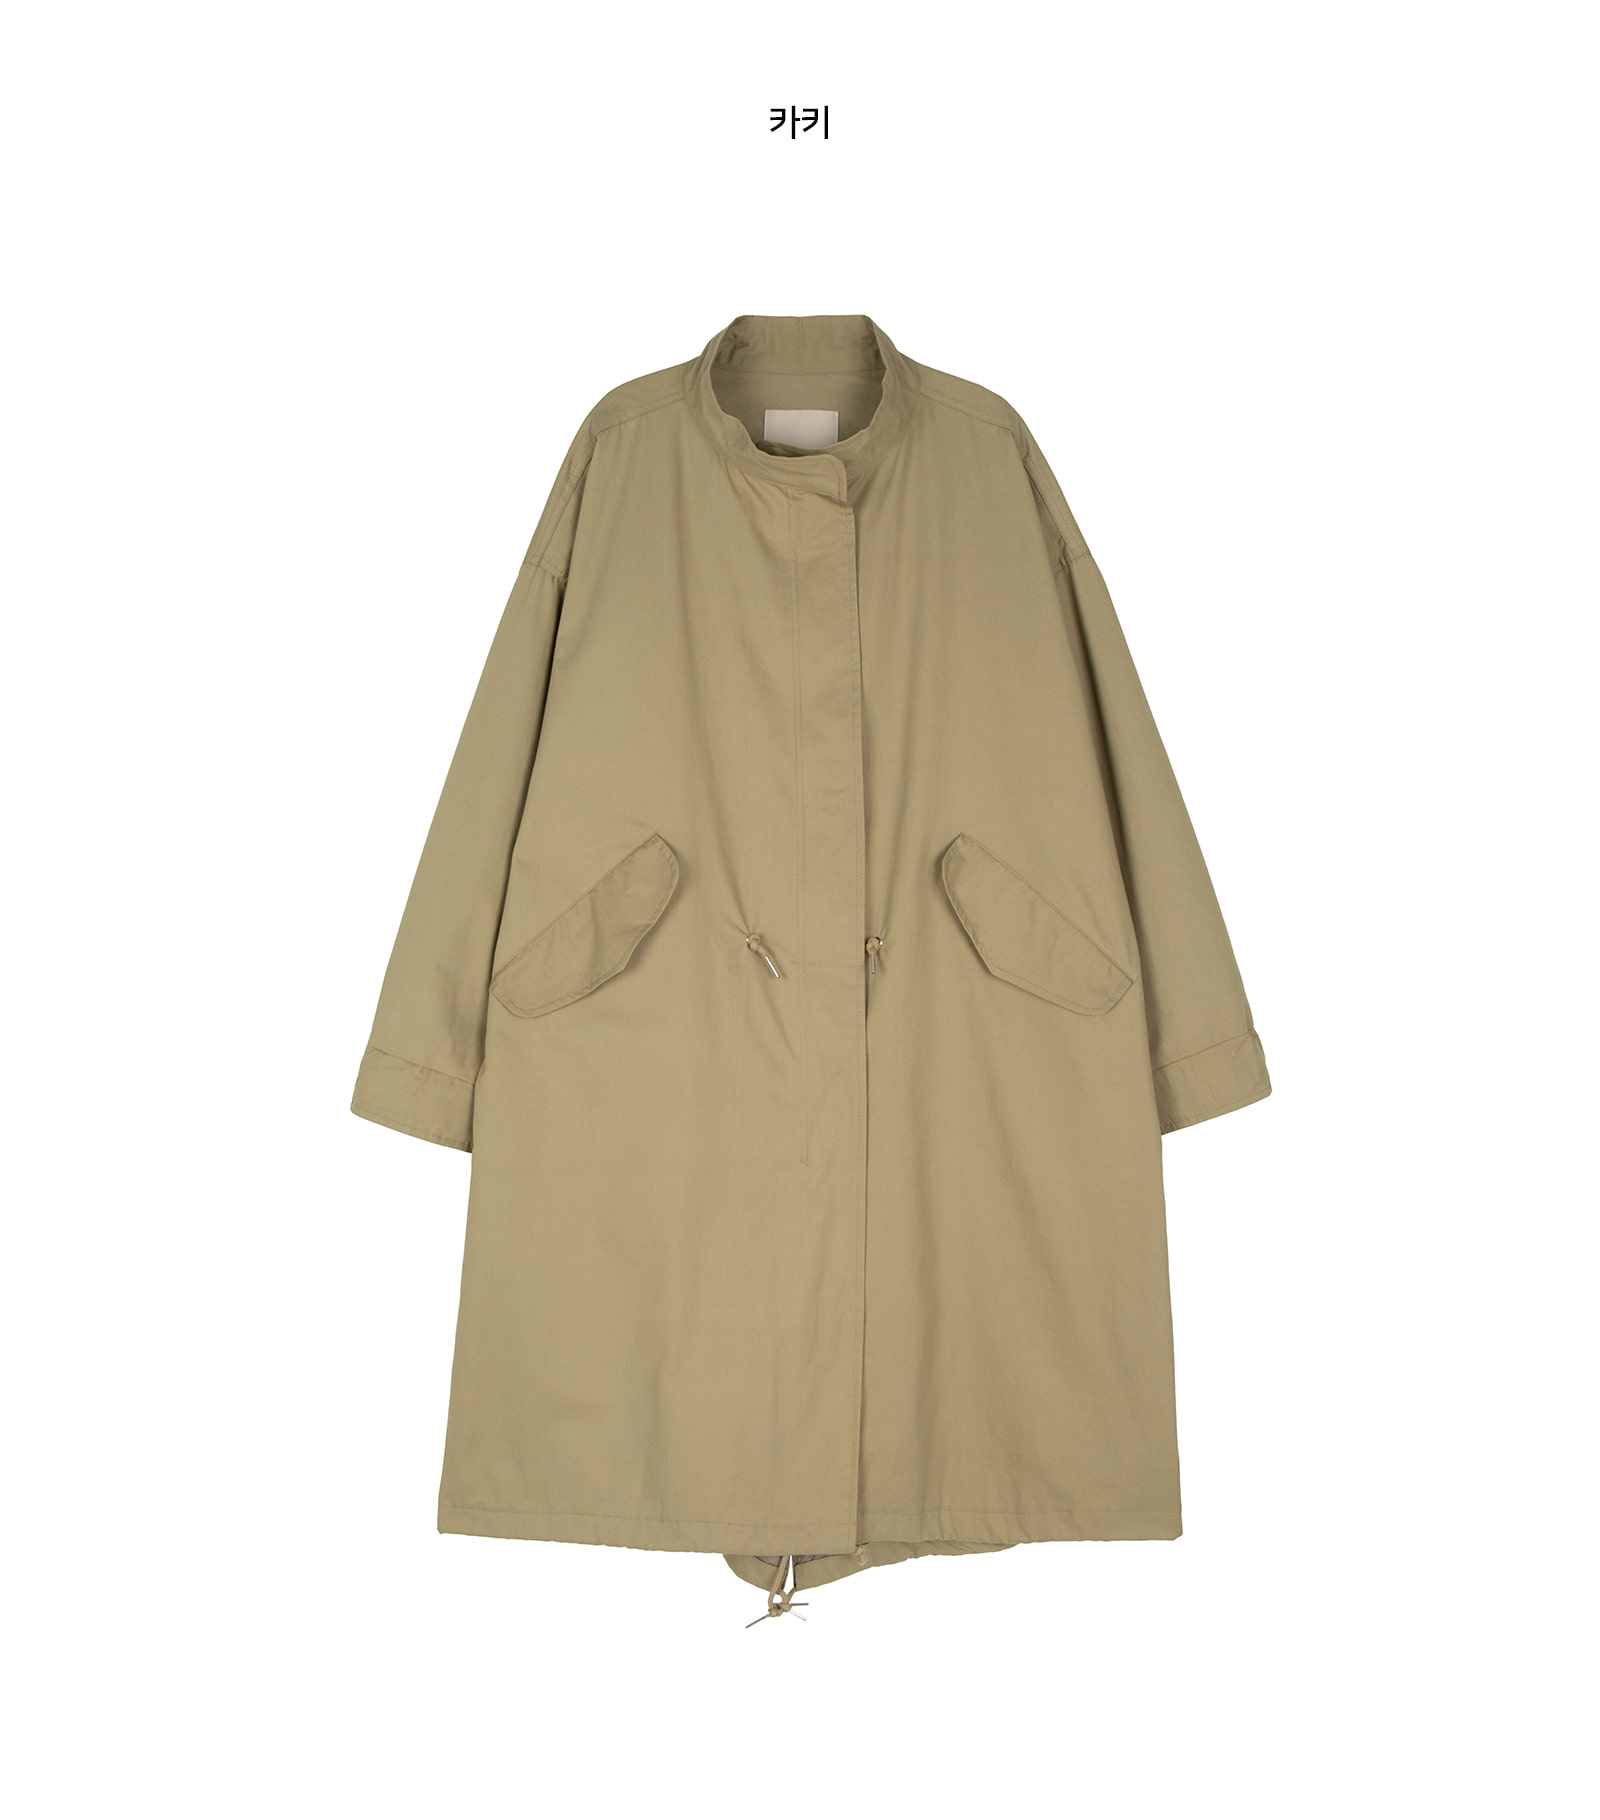 Sand zipped trench coat